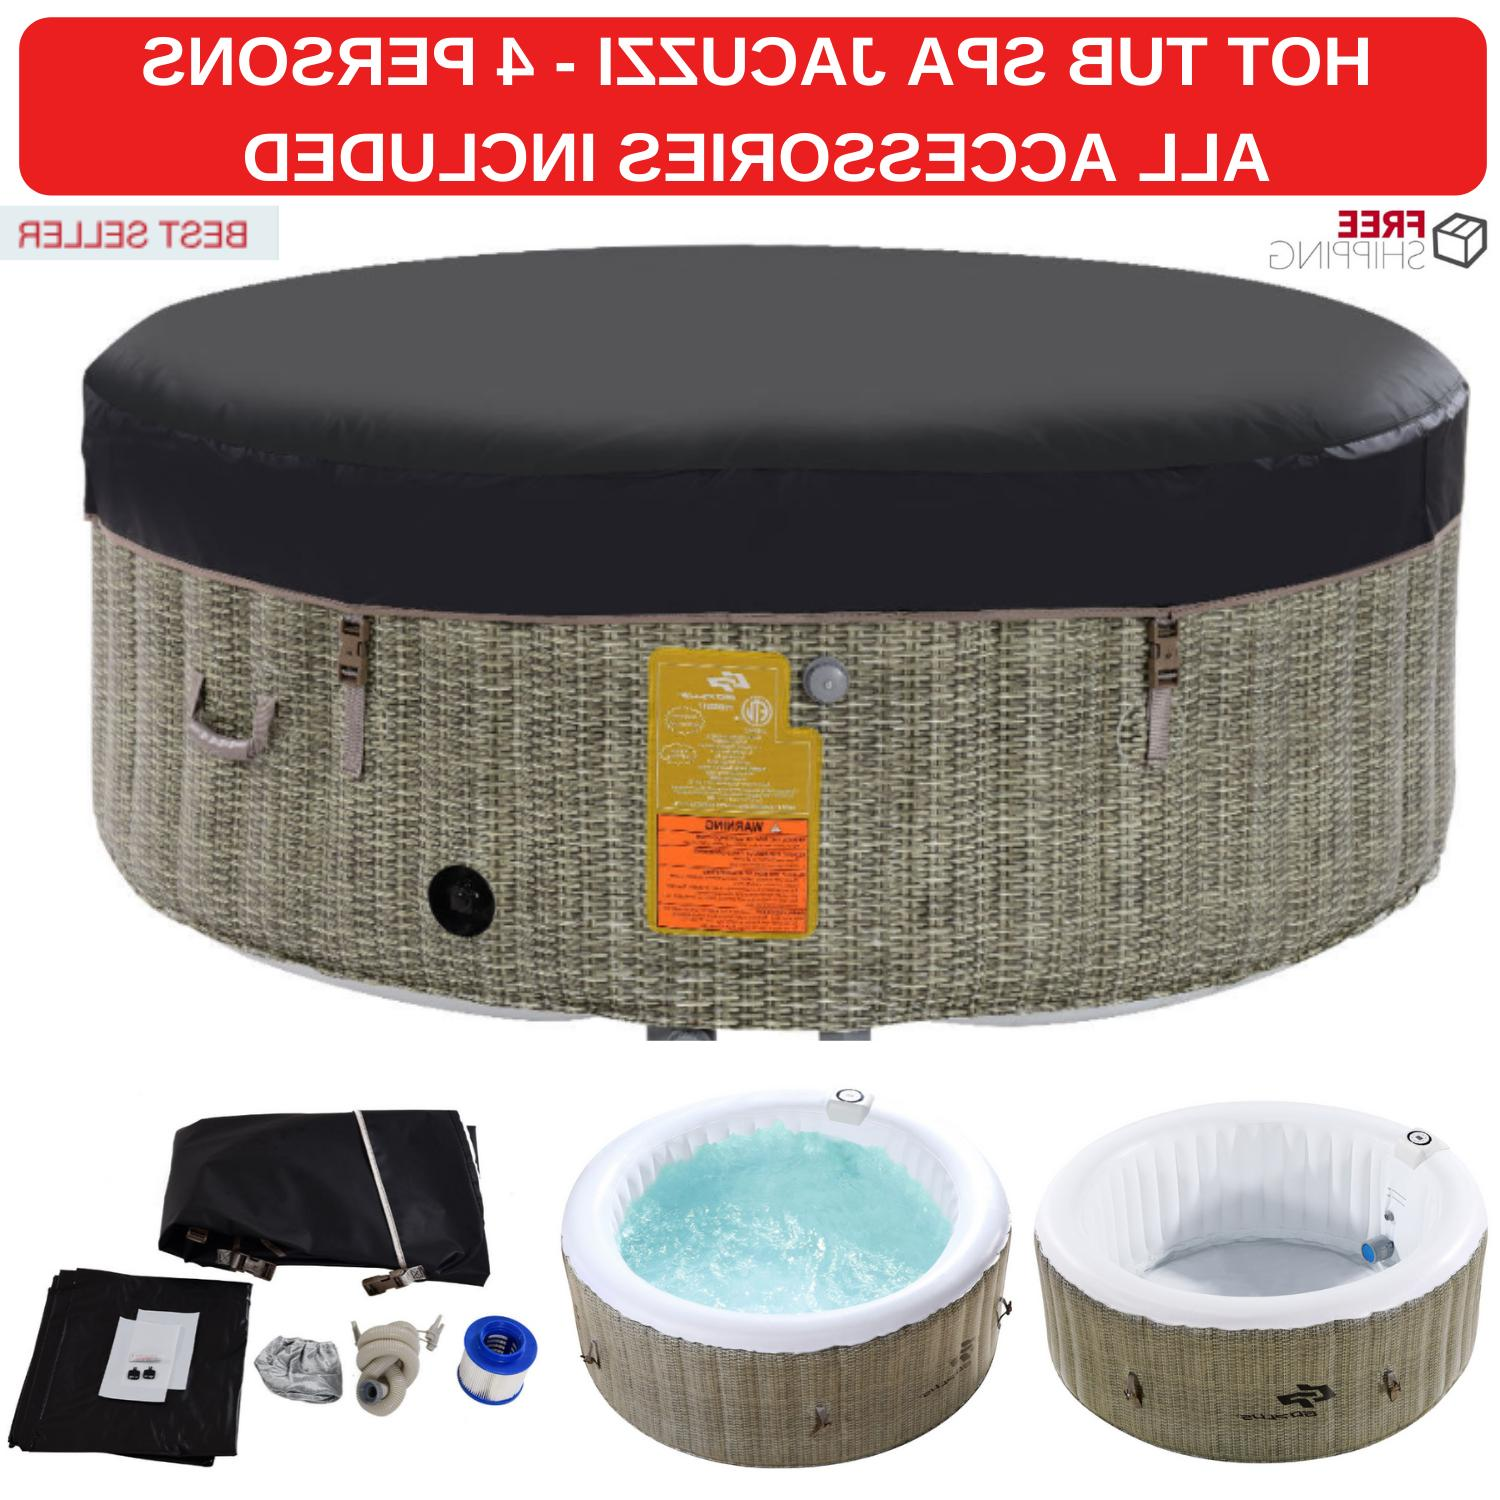 High Quality Hot Tub Spa Jacuzzi For Massage Relax 4 Person